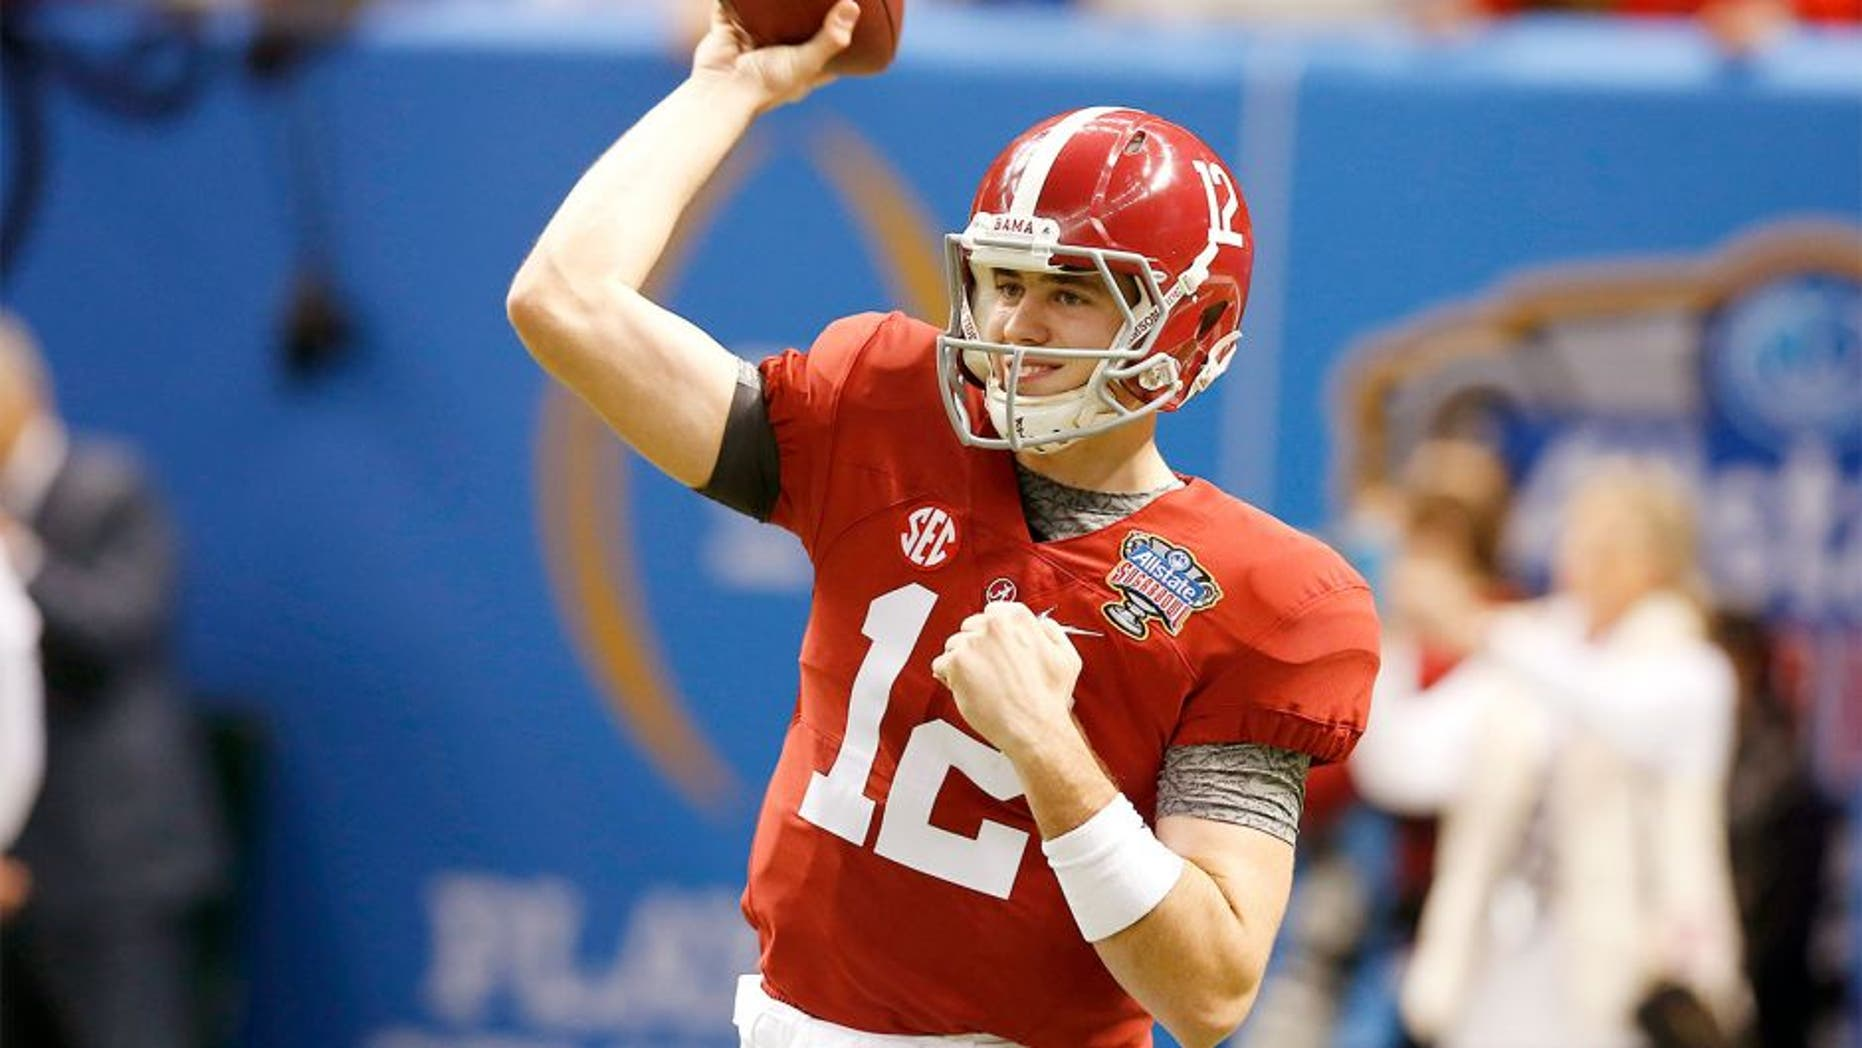 Jan 1, 2015; New Orleans, LA, USA; Alabama Crimson Tide quarterback David Cornwell (12) prior to the game against the Ohio State Buckeyes in the 2015 Sugar Bowl at Mercedes-Benz Superdome. Mandatory Credit: Matthew Emmons-USA TODAY Sports